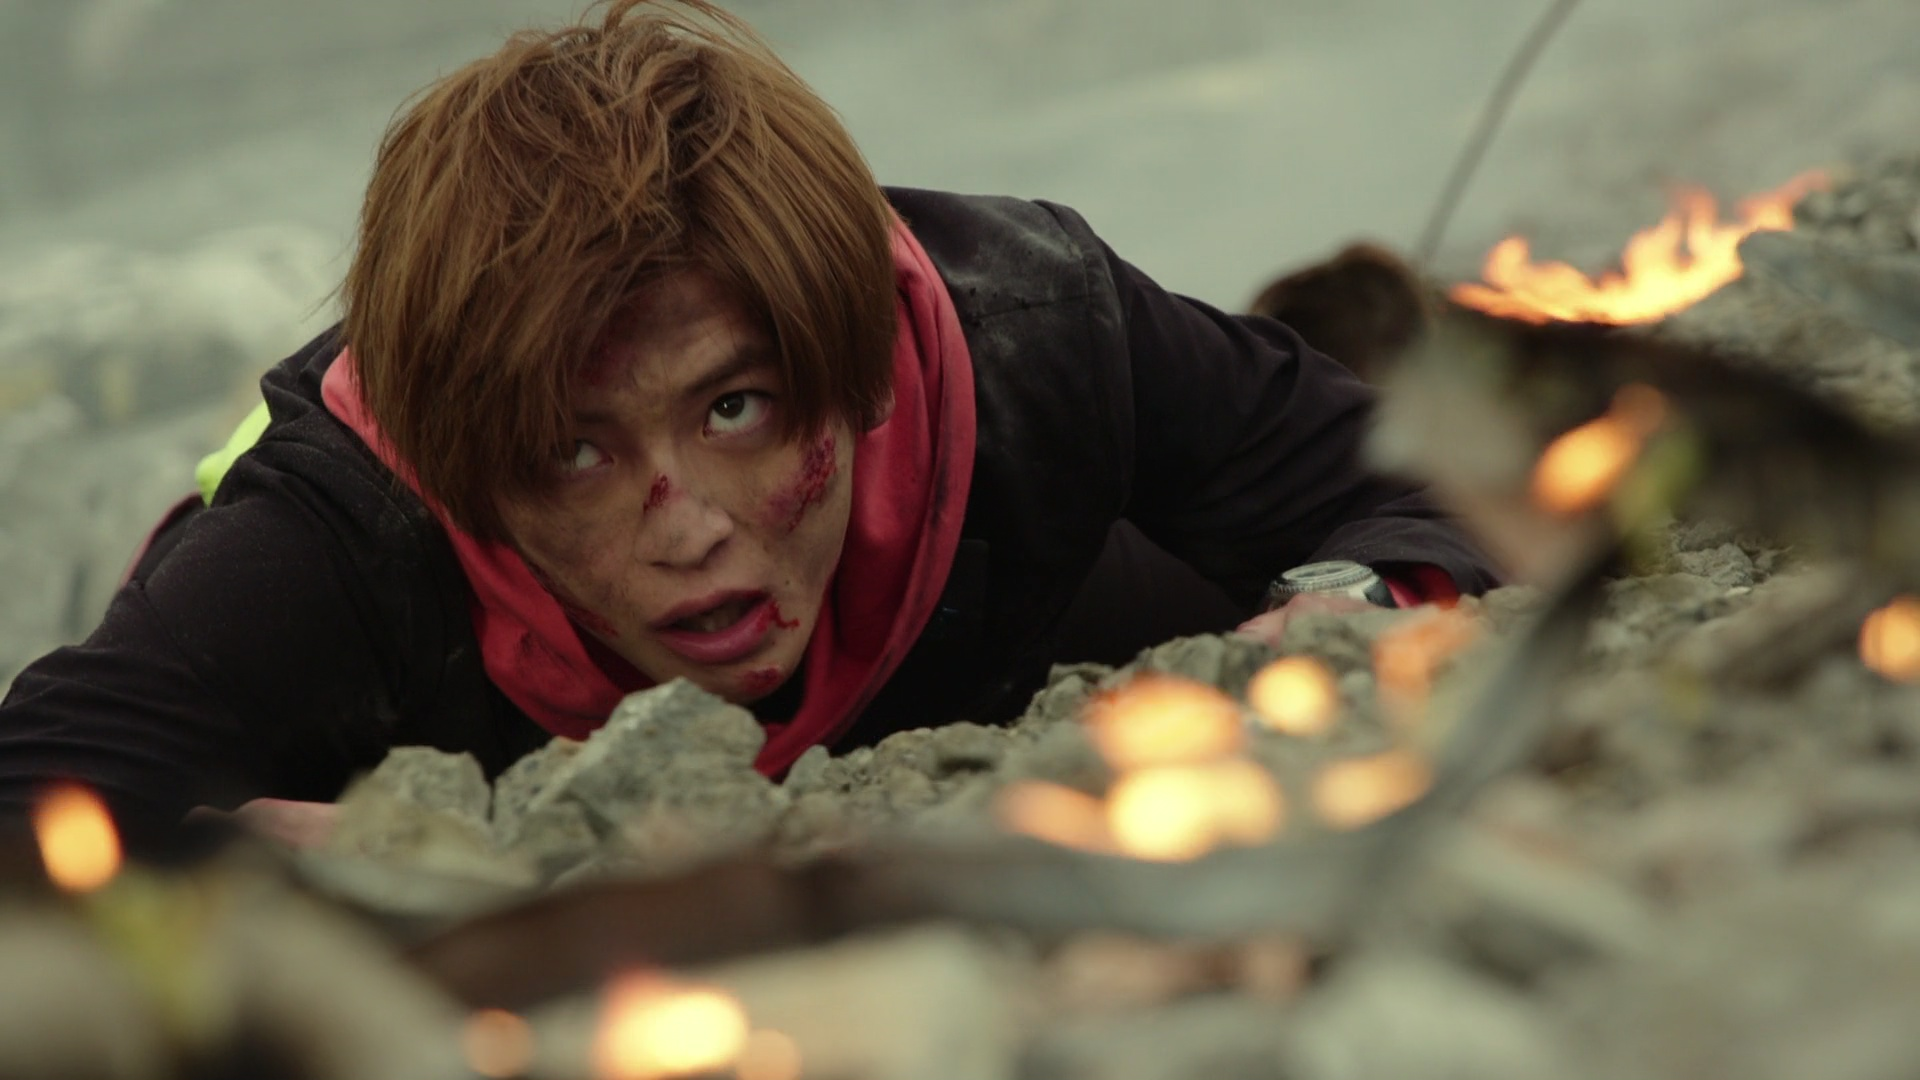 Kamen Rider Zero-One REALxTIME Review